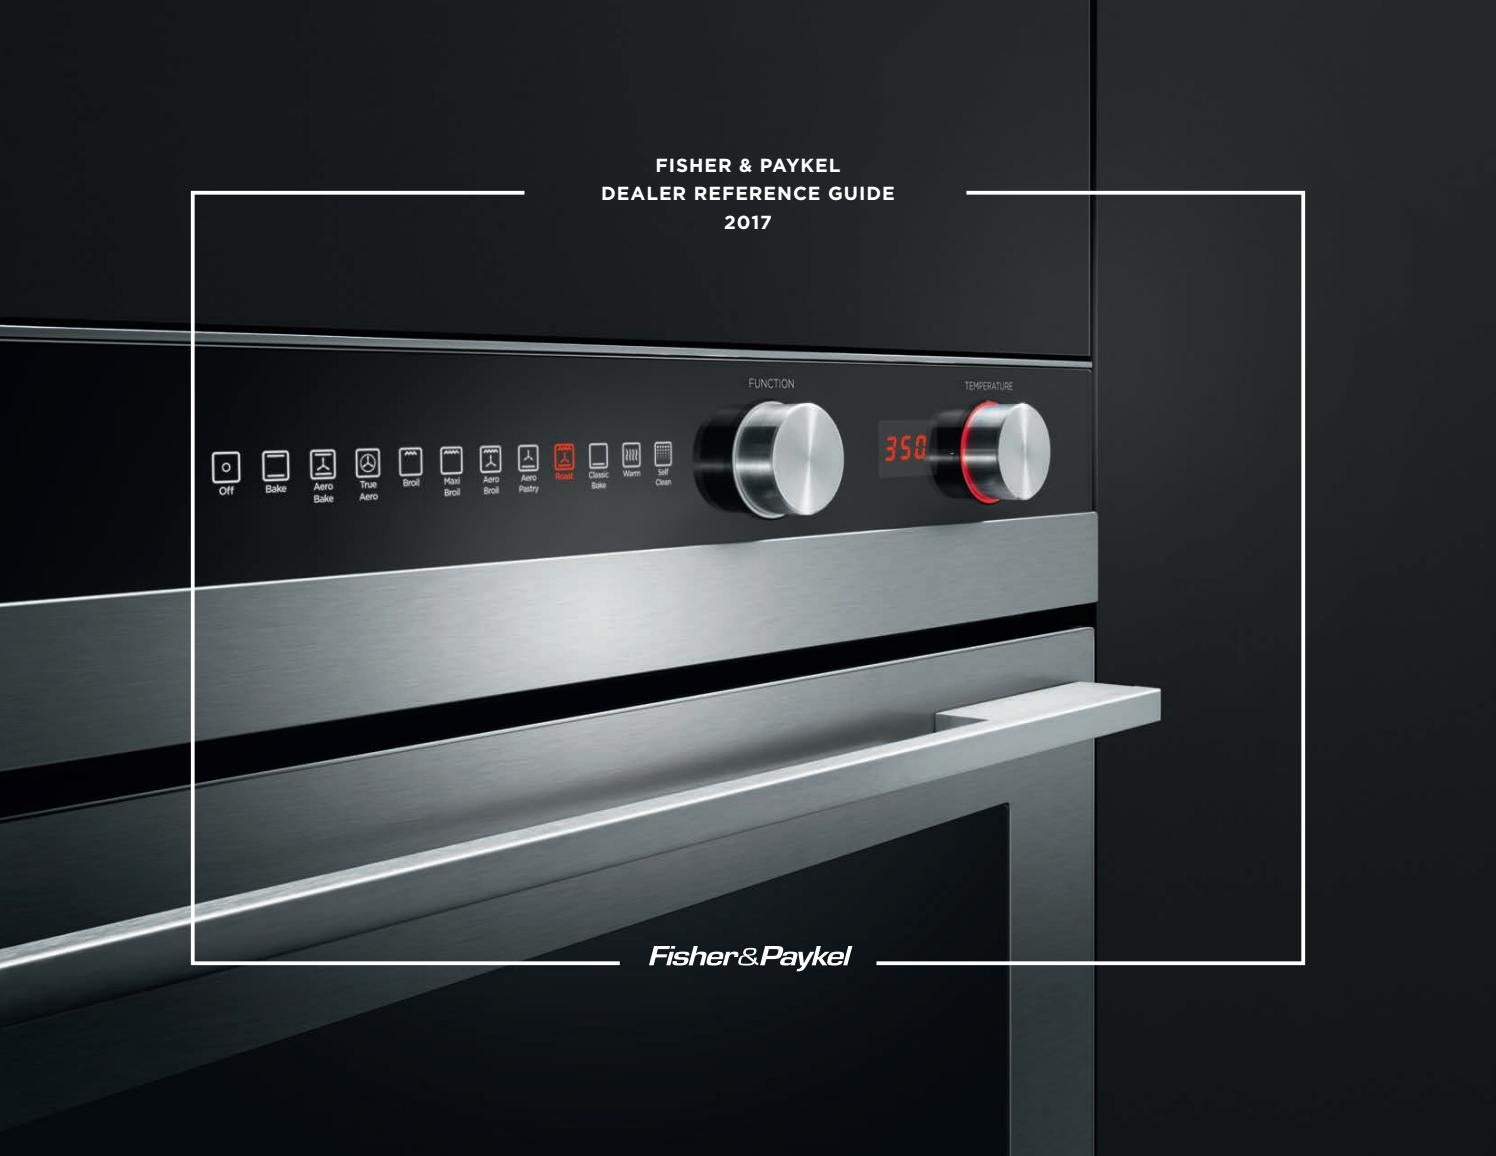 Fisher & Paykel USA/CA Product Catalog 2017